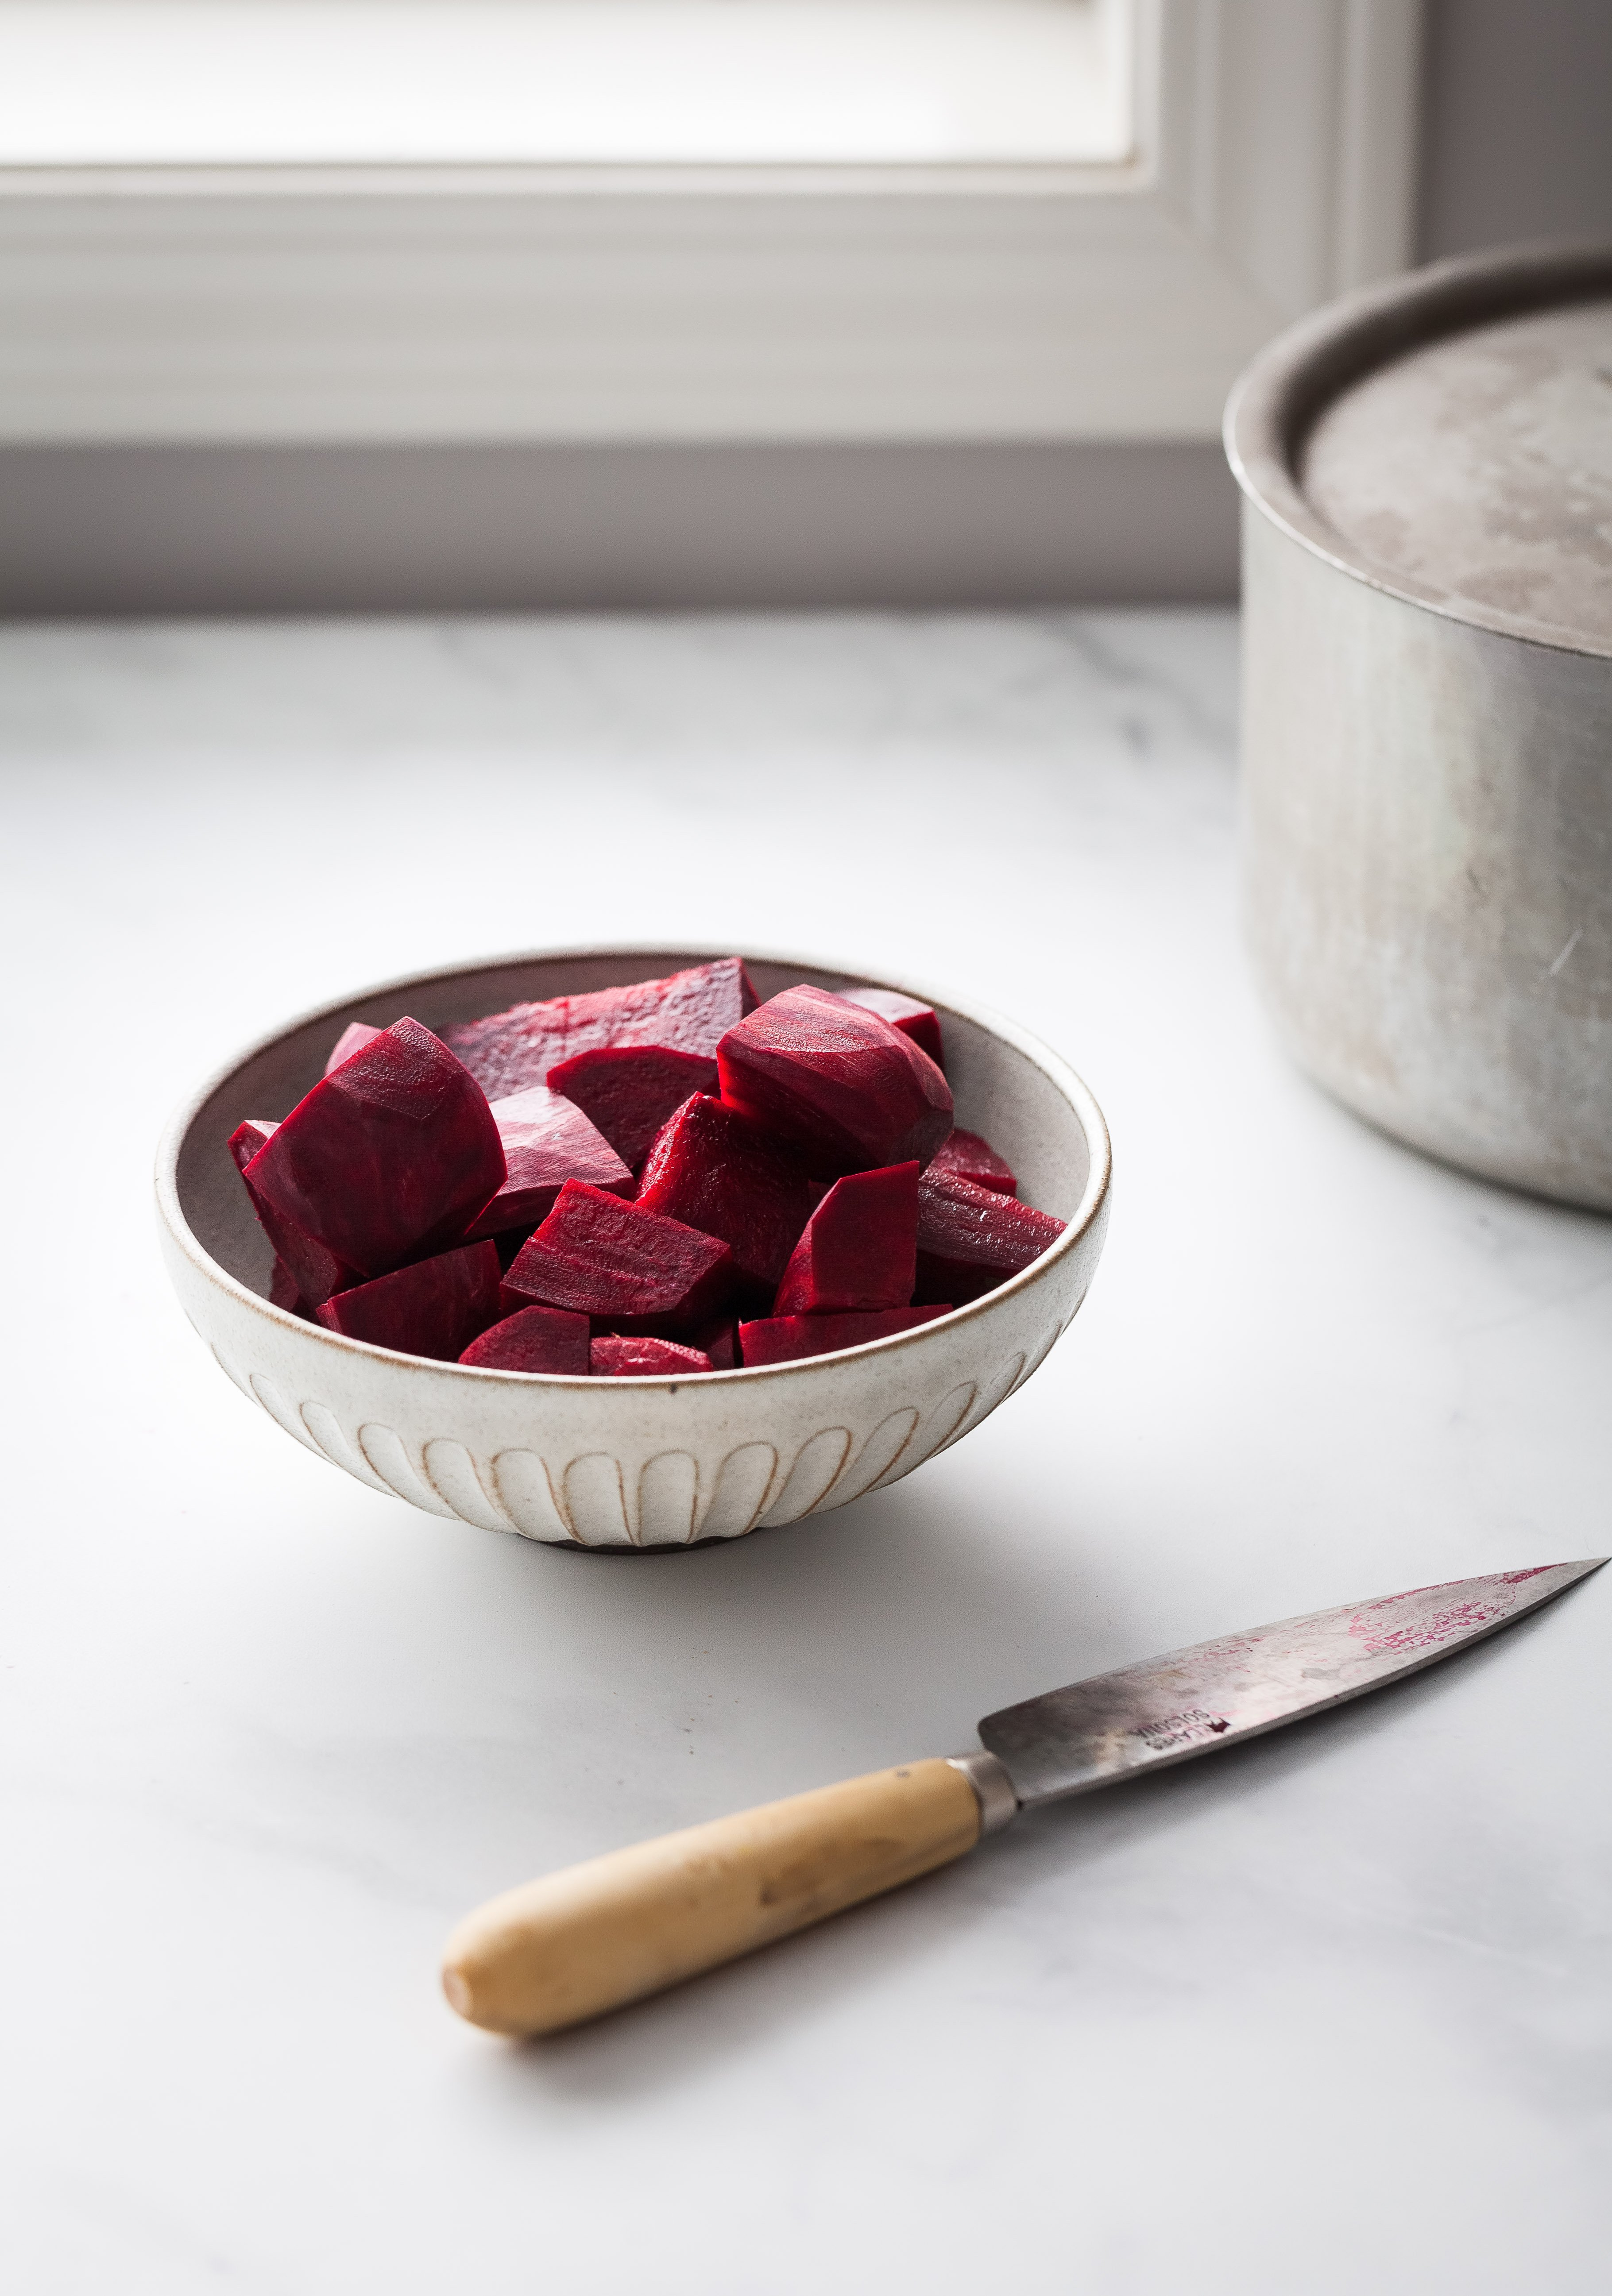 a hea don image of cut up beets sitting in a bowl next to a window.